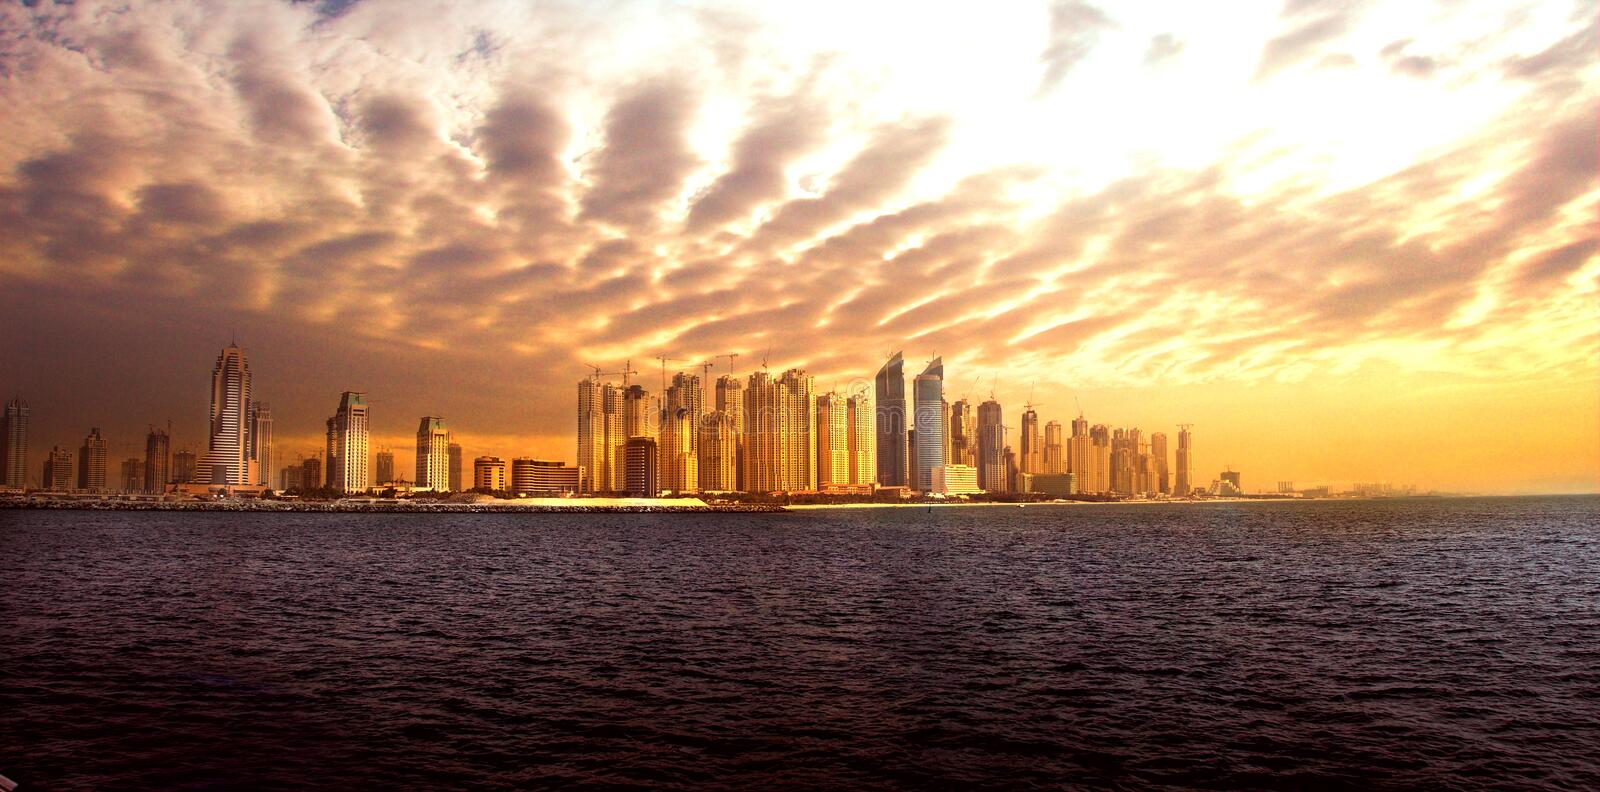 Dubai Skyline royalty free stock photography